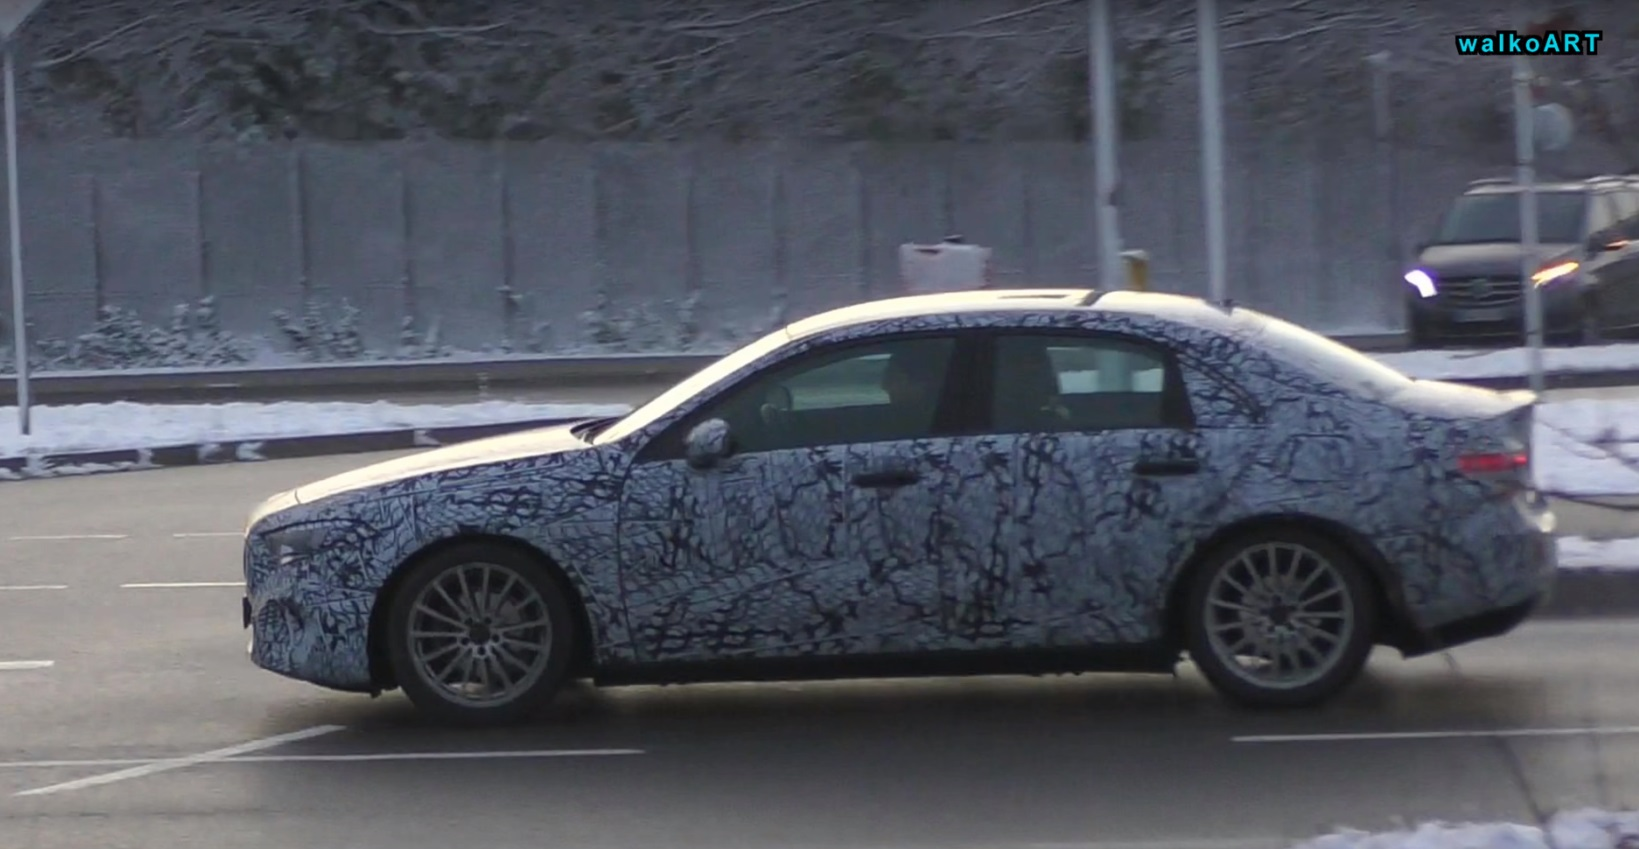 2019 Mercedes Benz A Class Sedan Still Shy Even After Hatchback